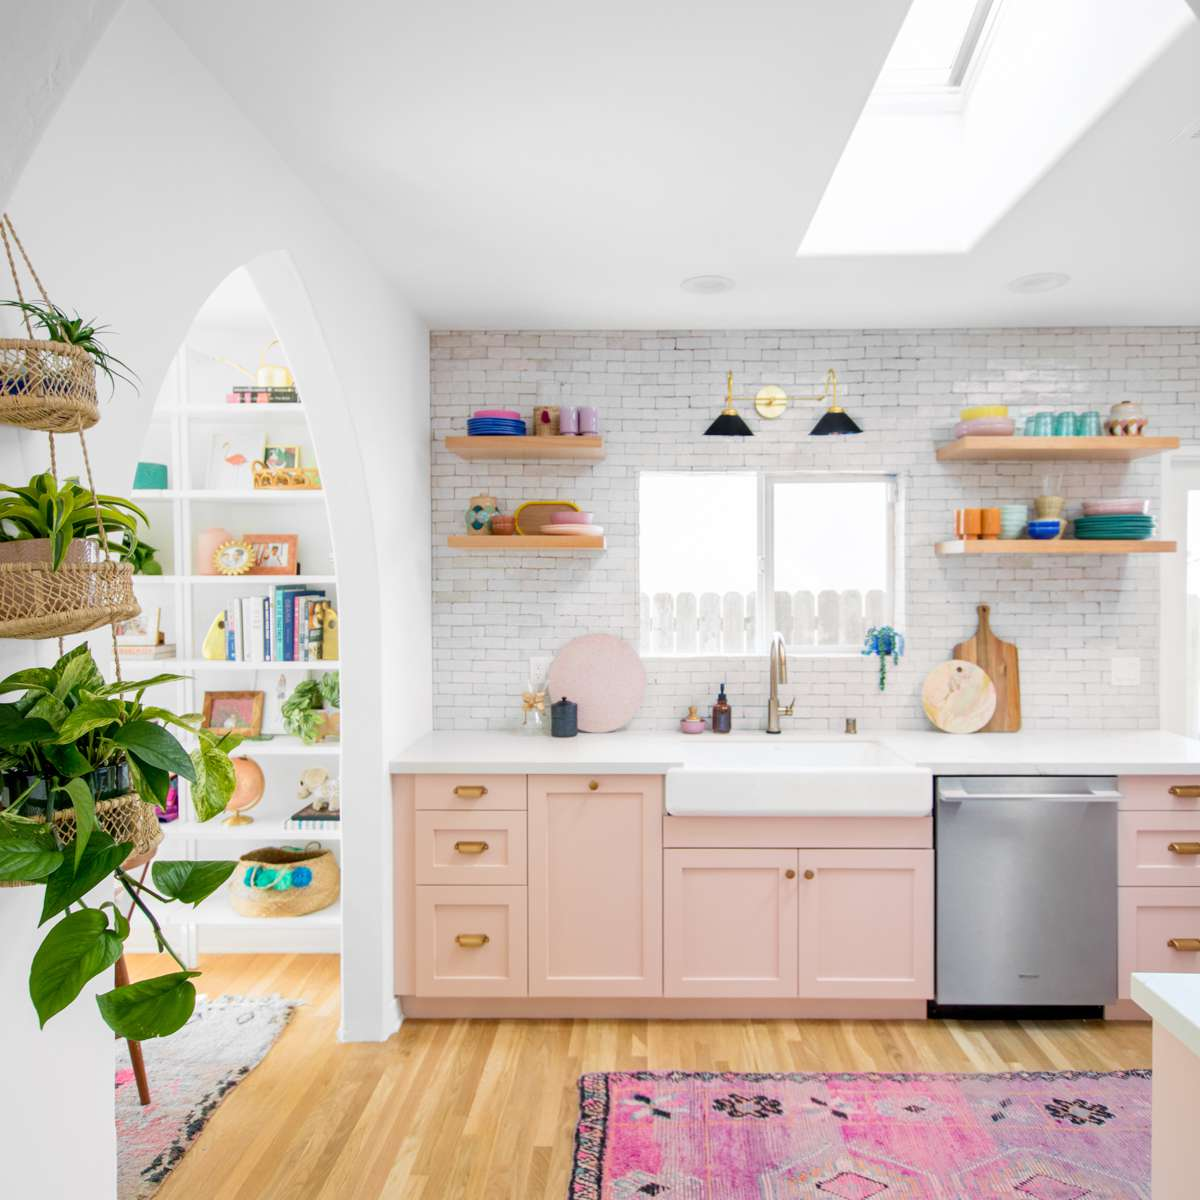 Kitchen with plants and pink cabinets.